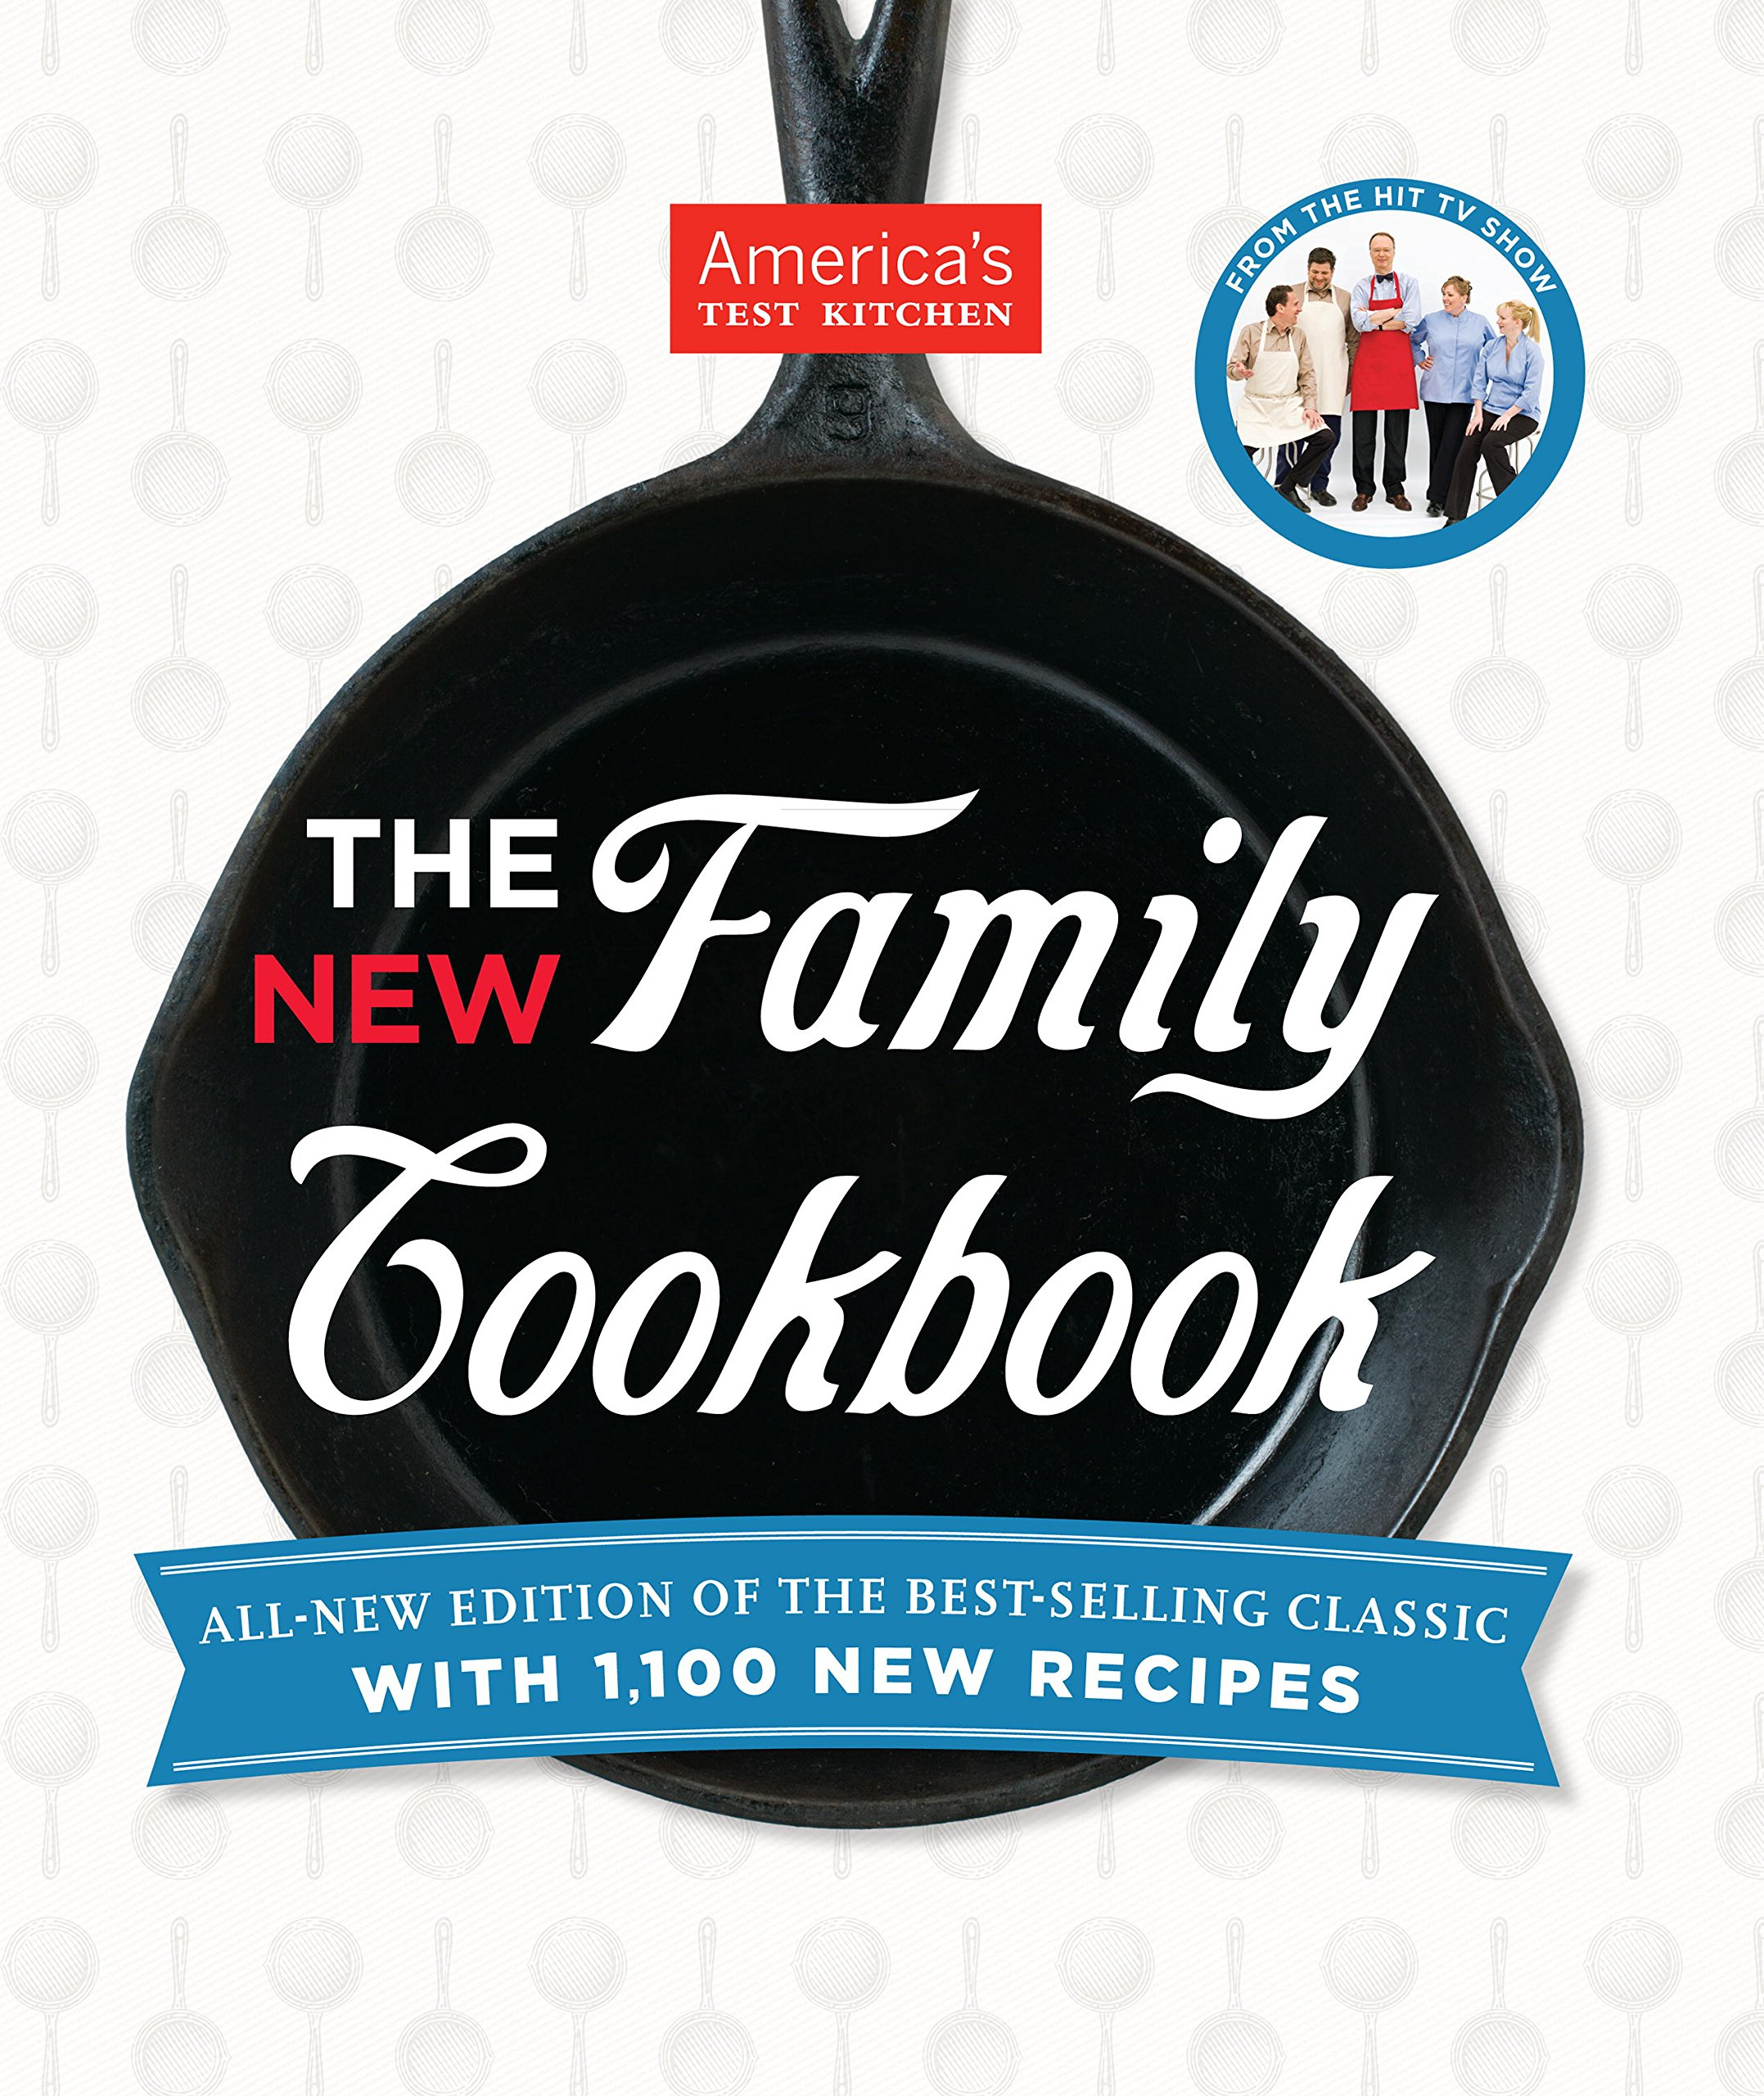 Image OfThe New Family Cookbook: All-New Edition Of The Best-Selling Classic With 1,100 New Recipes